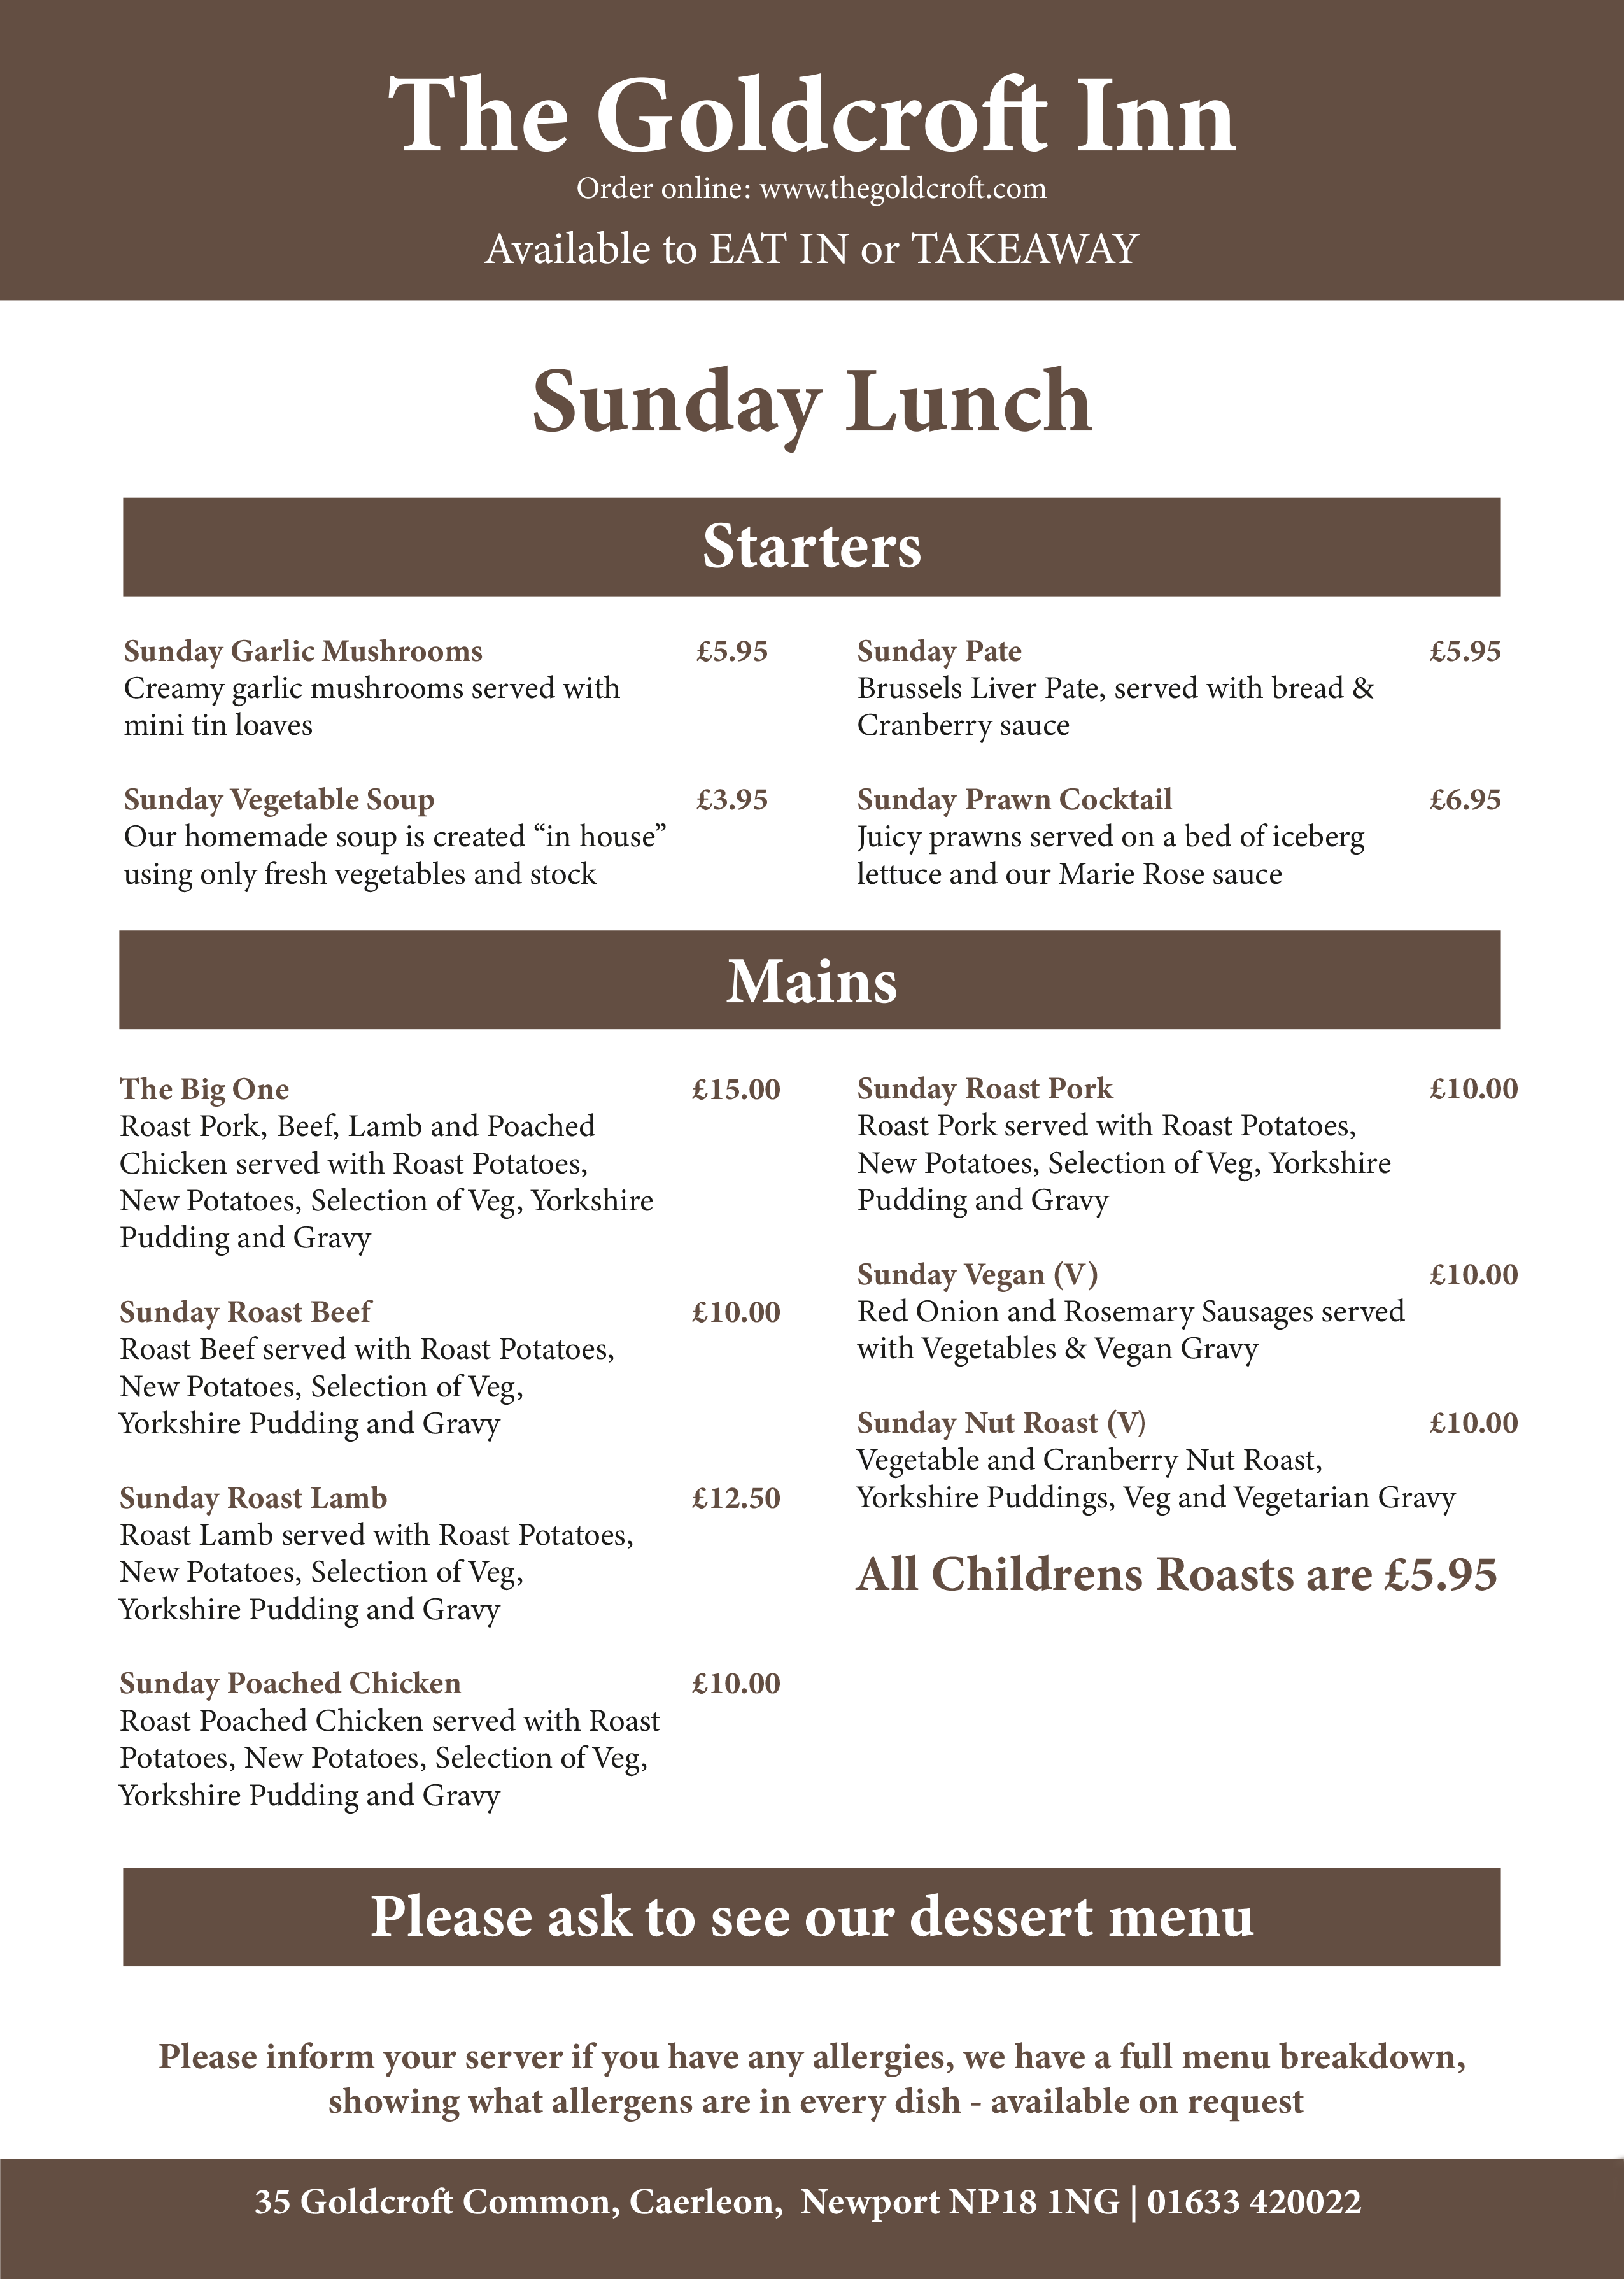 Goldcroft Sunday Menu